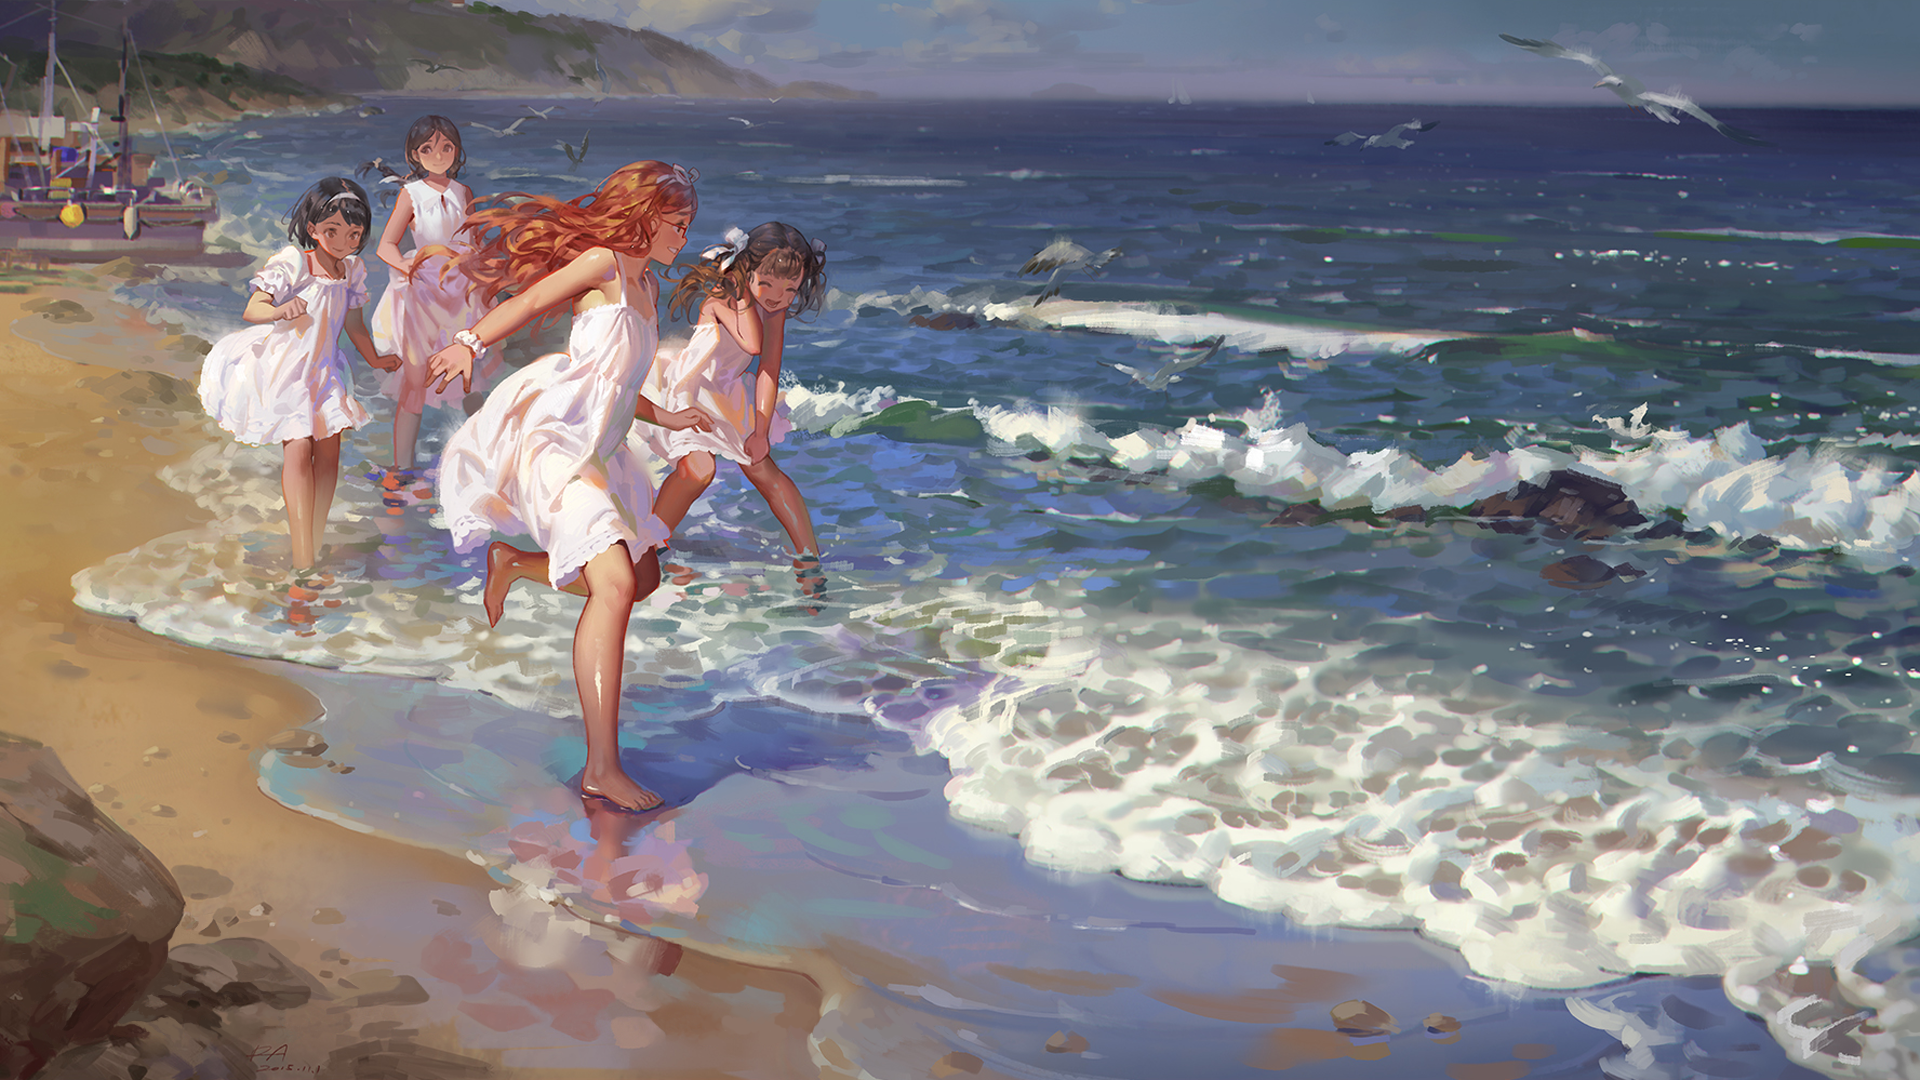 Girls On The Beach Hd Wallpaper Background Image 1920x1080